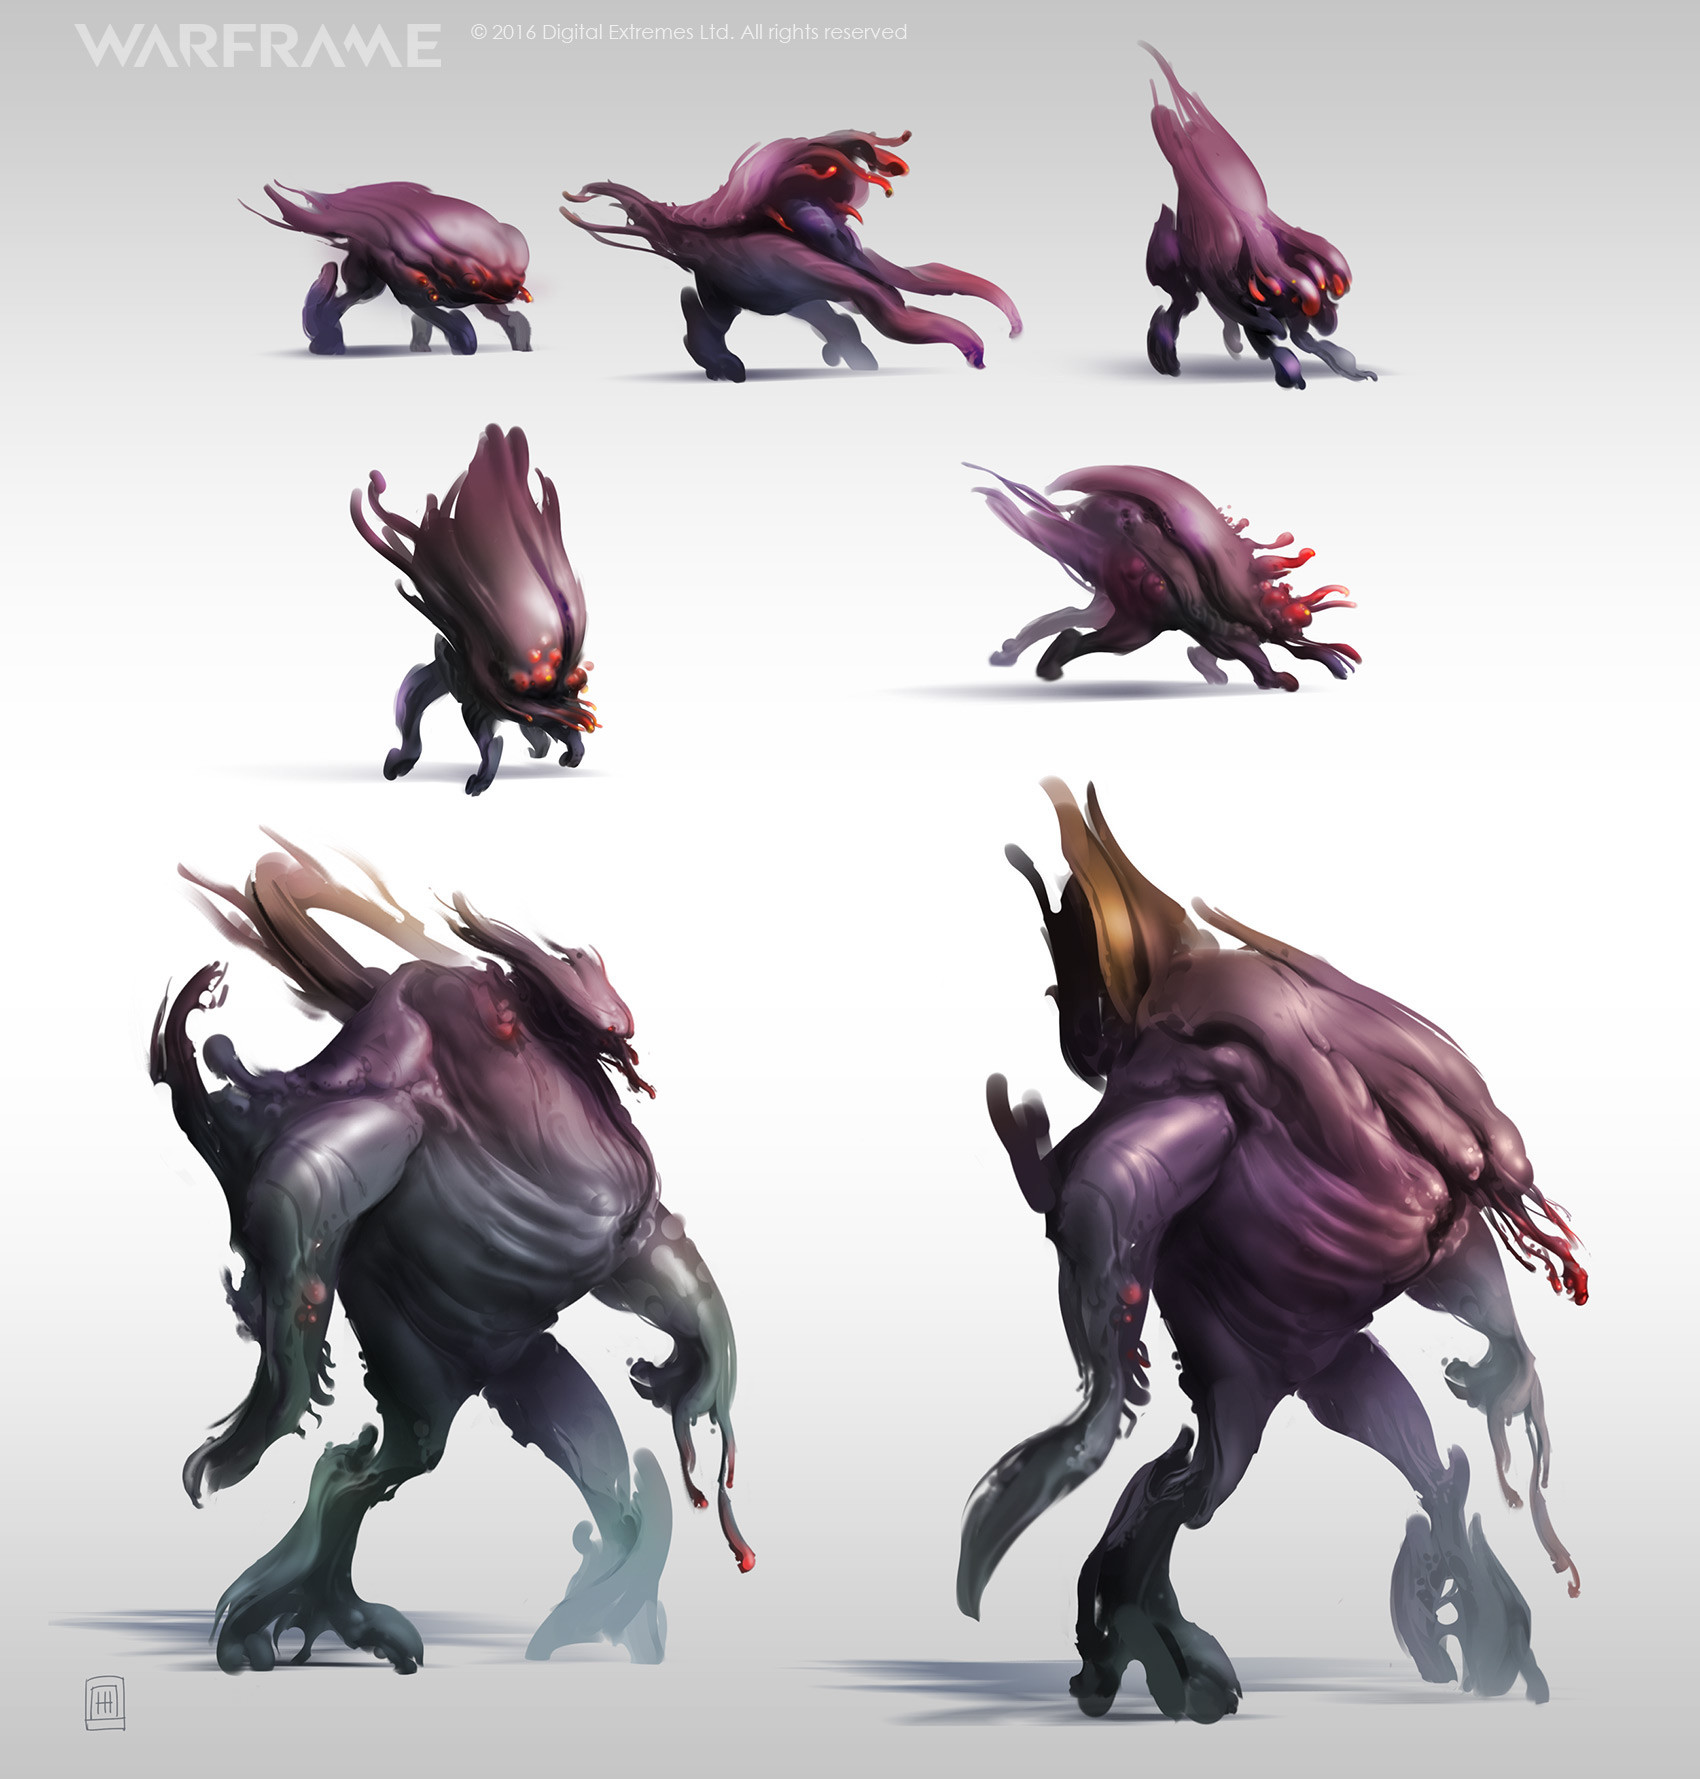 ArtStation - Warframe - Ancient Infested - Maggot, Zeljko Duvnjak